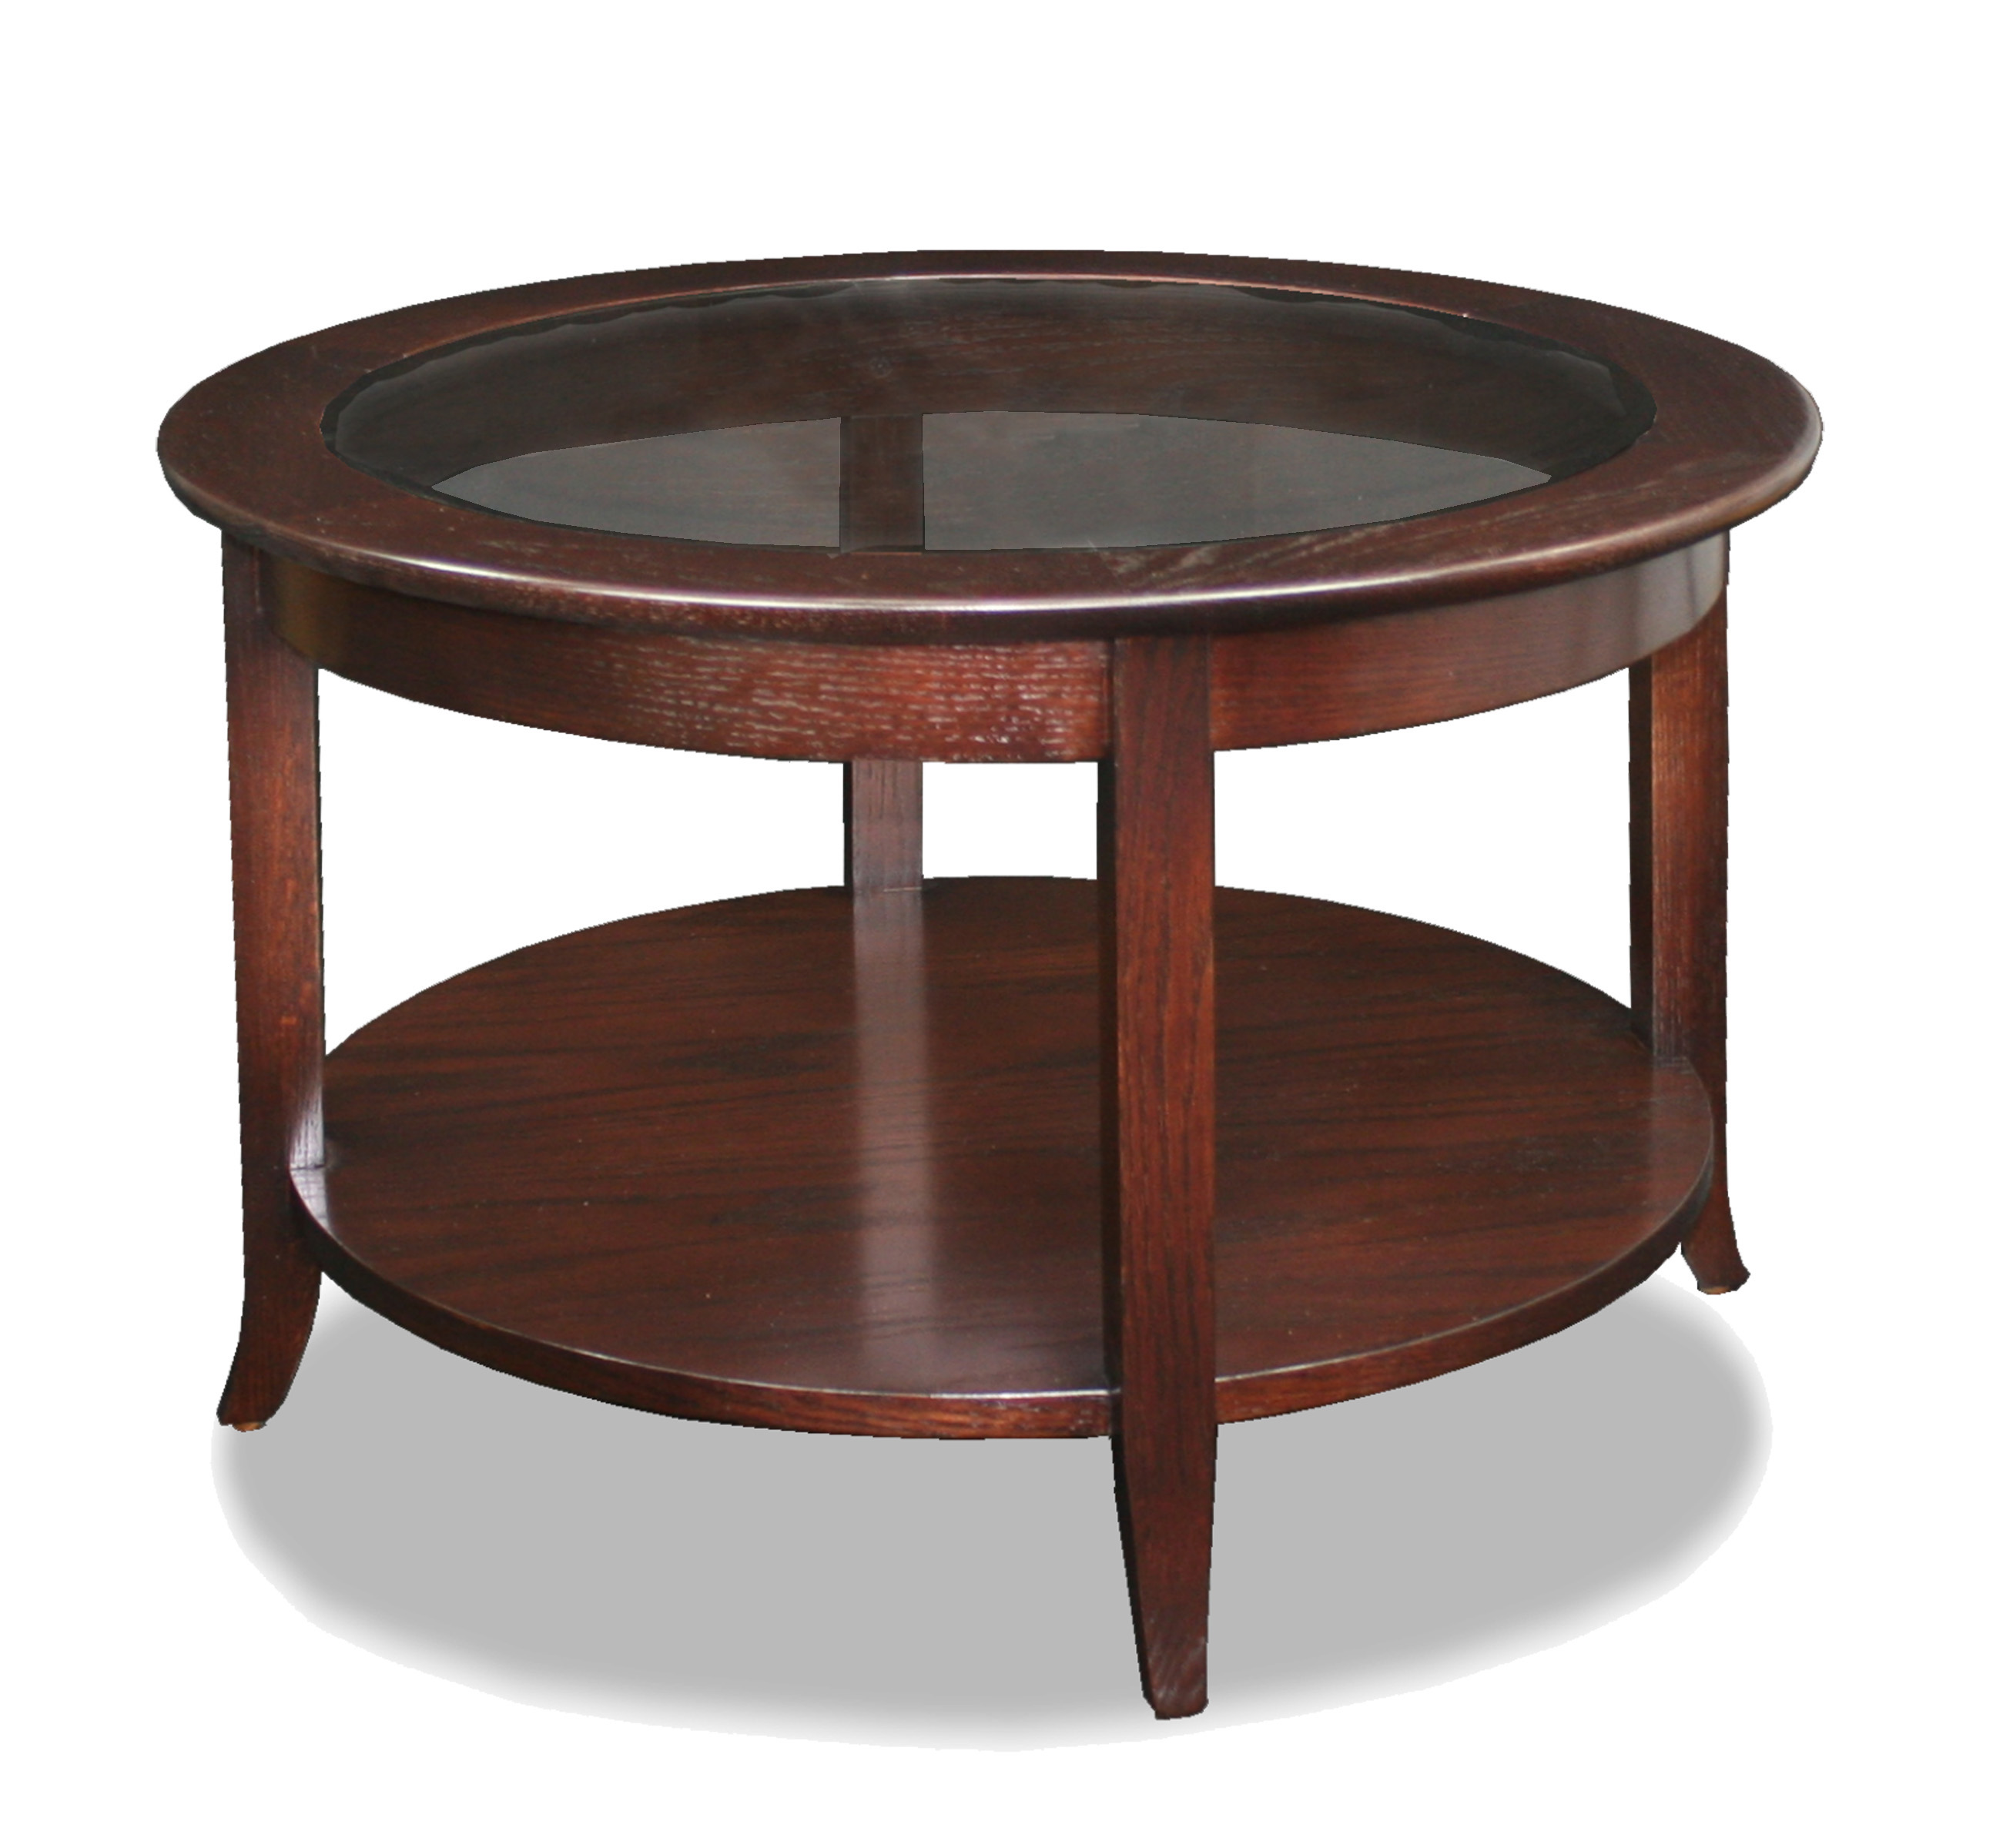 Adorable Design Of The Brown Wooden Oak Materials Of The Round Wood Coffee Table For Living Room Areas